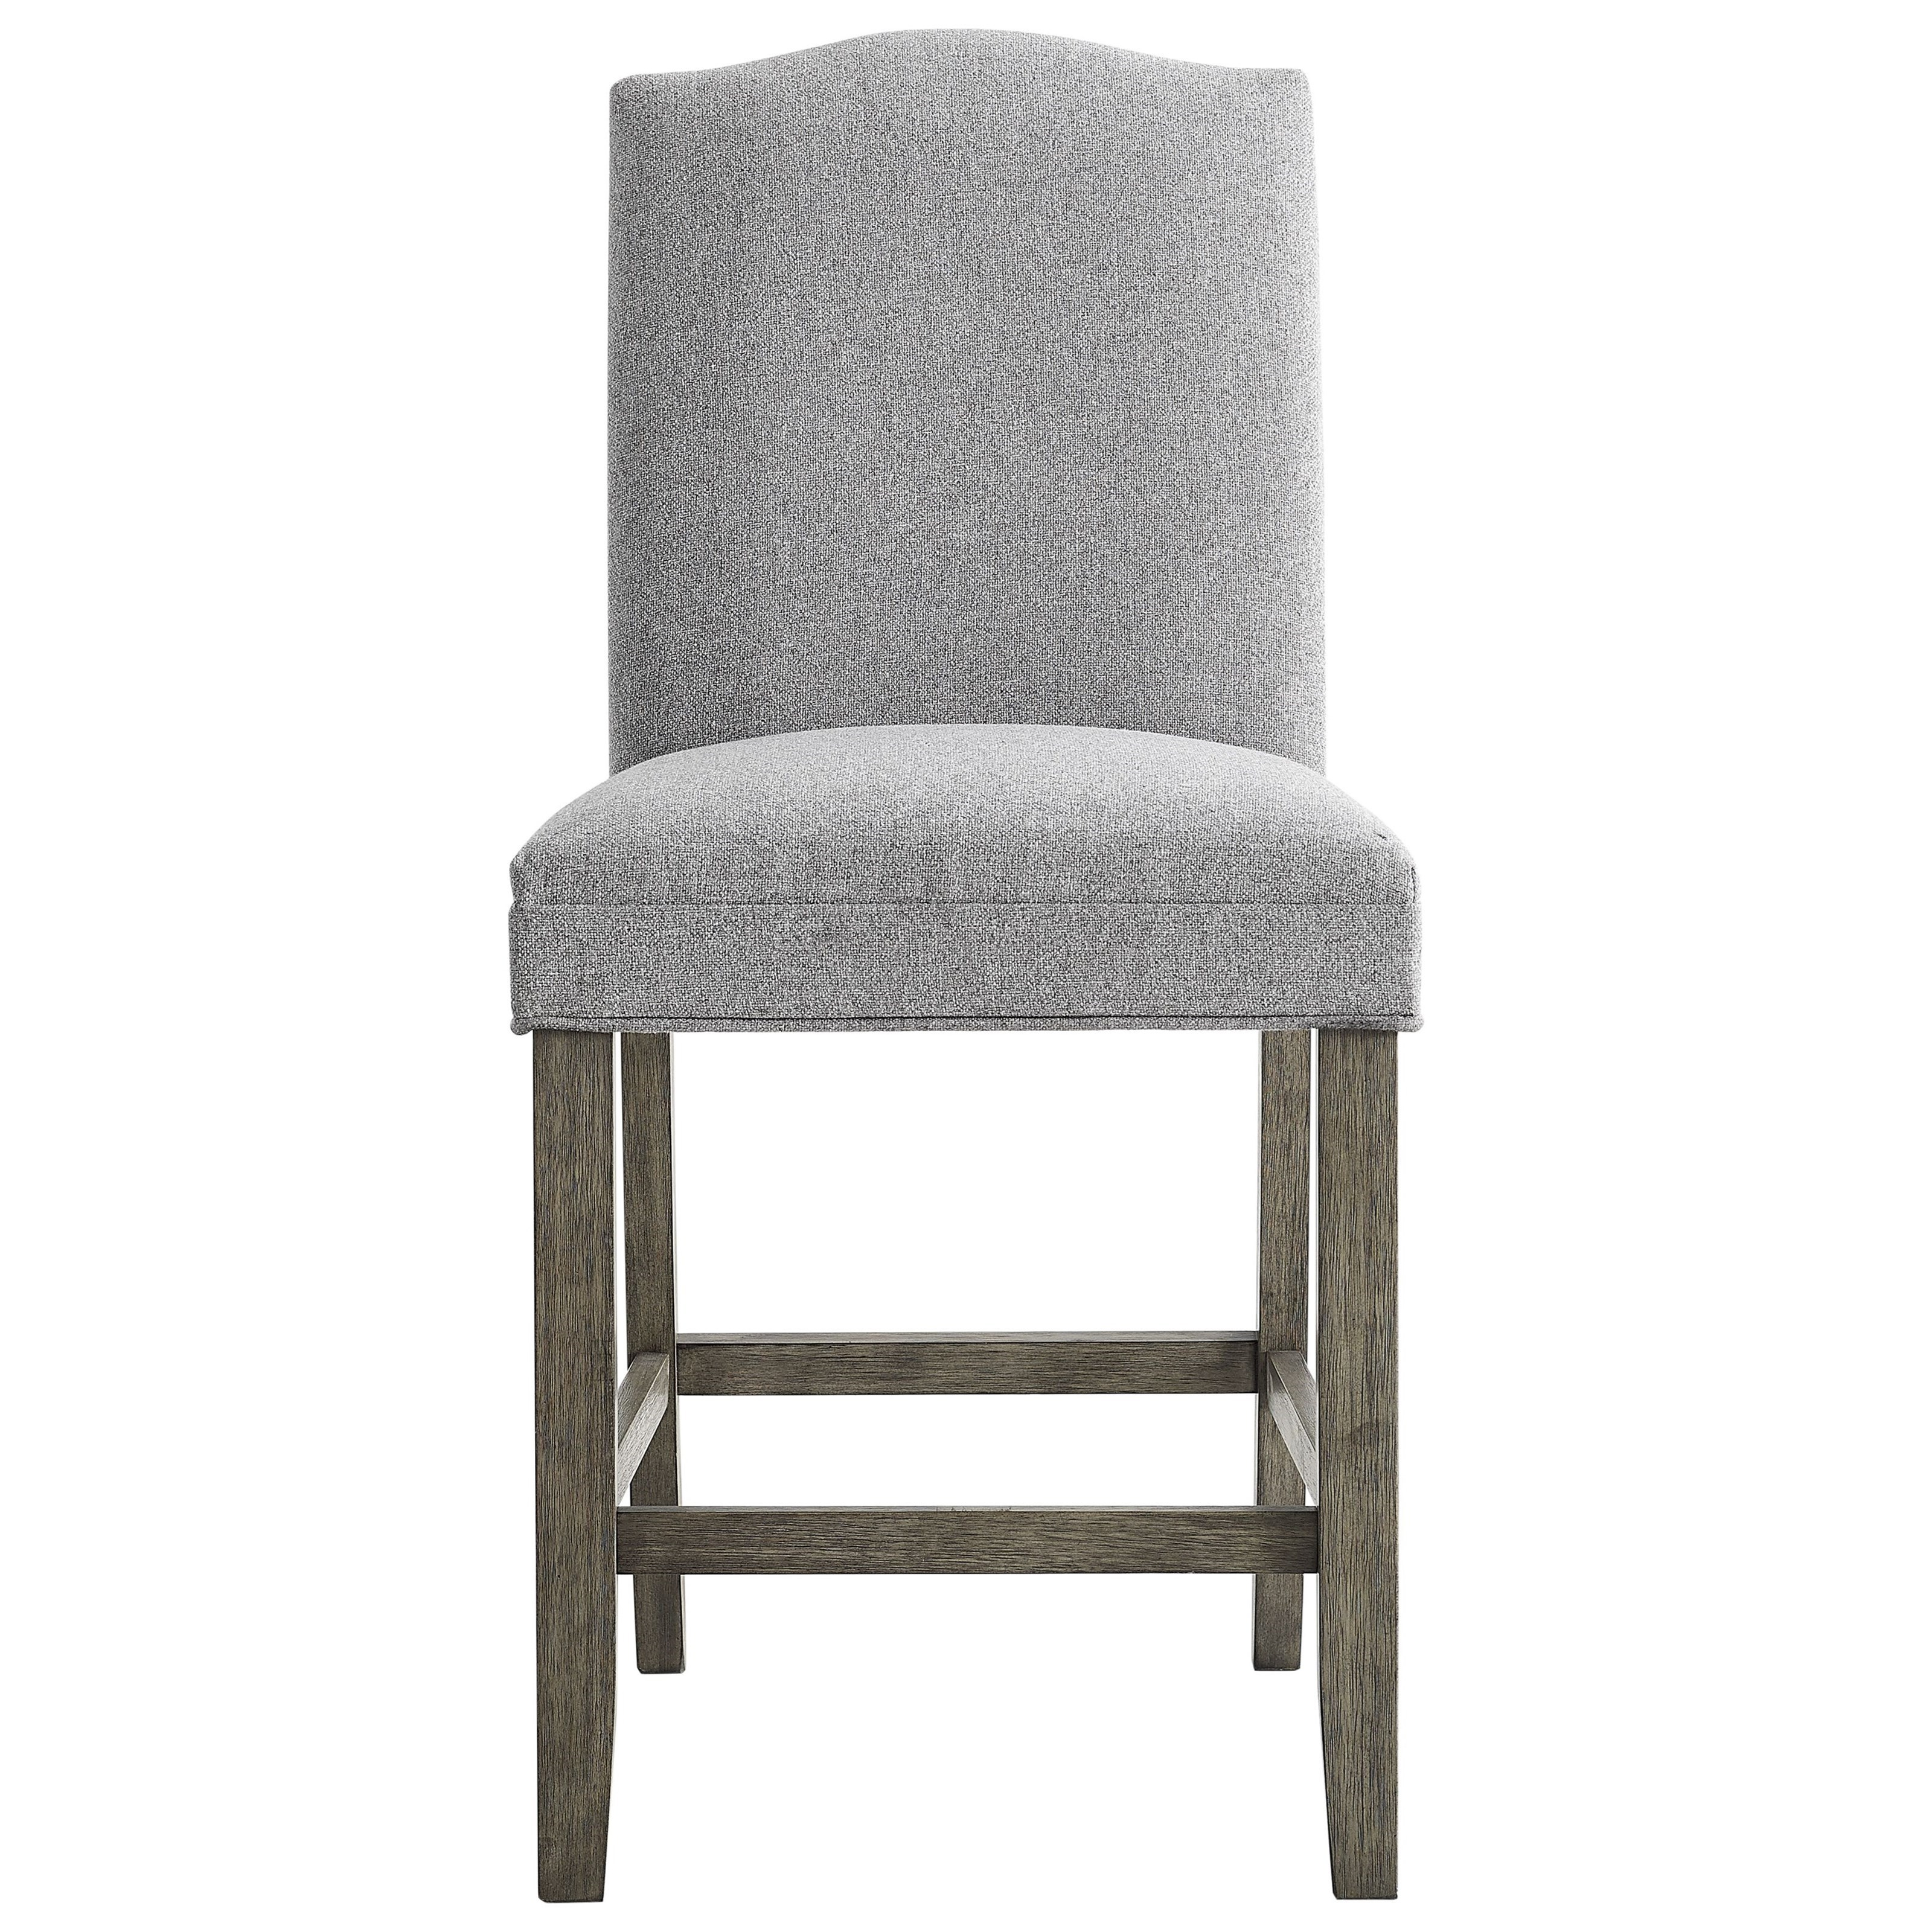 Grayson Upholstered Counter Height Chair by Steve Silver at Walker's Furniture